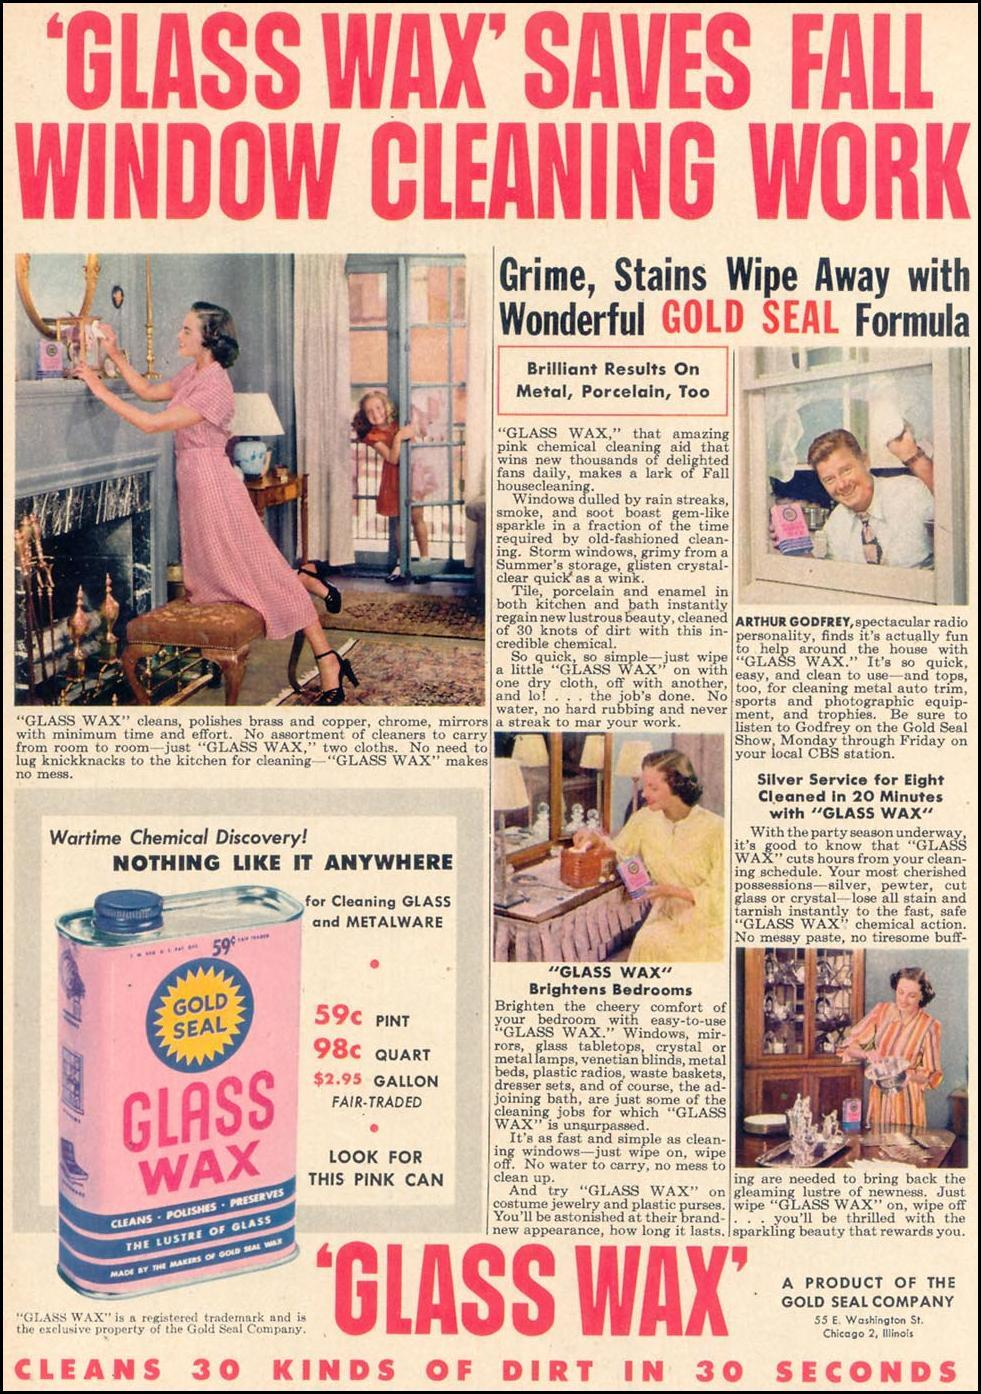 GOLD SEAL GLASS WAX